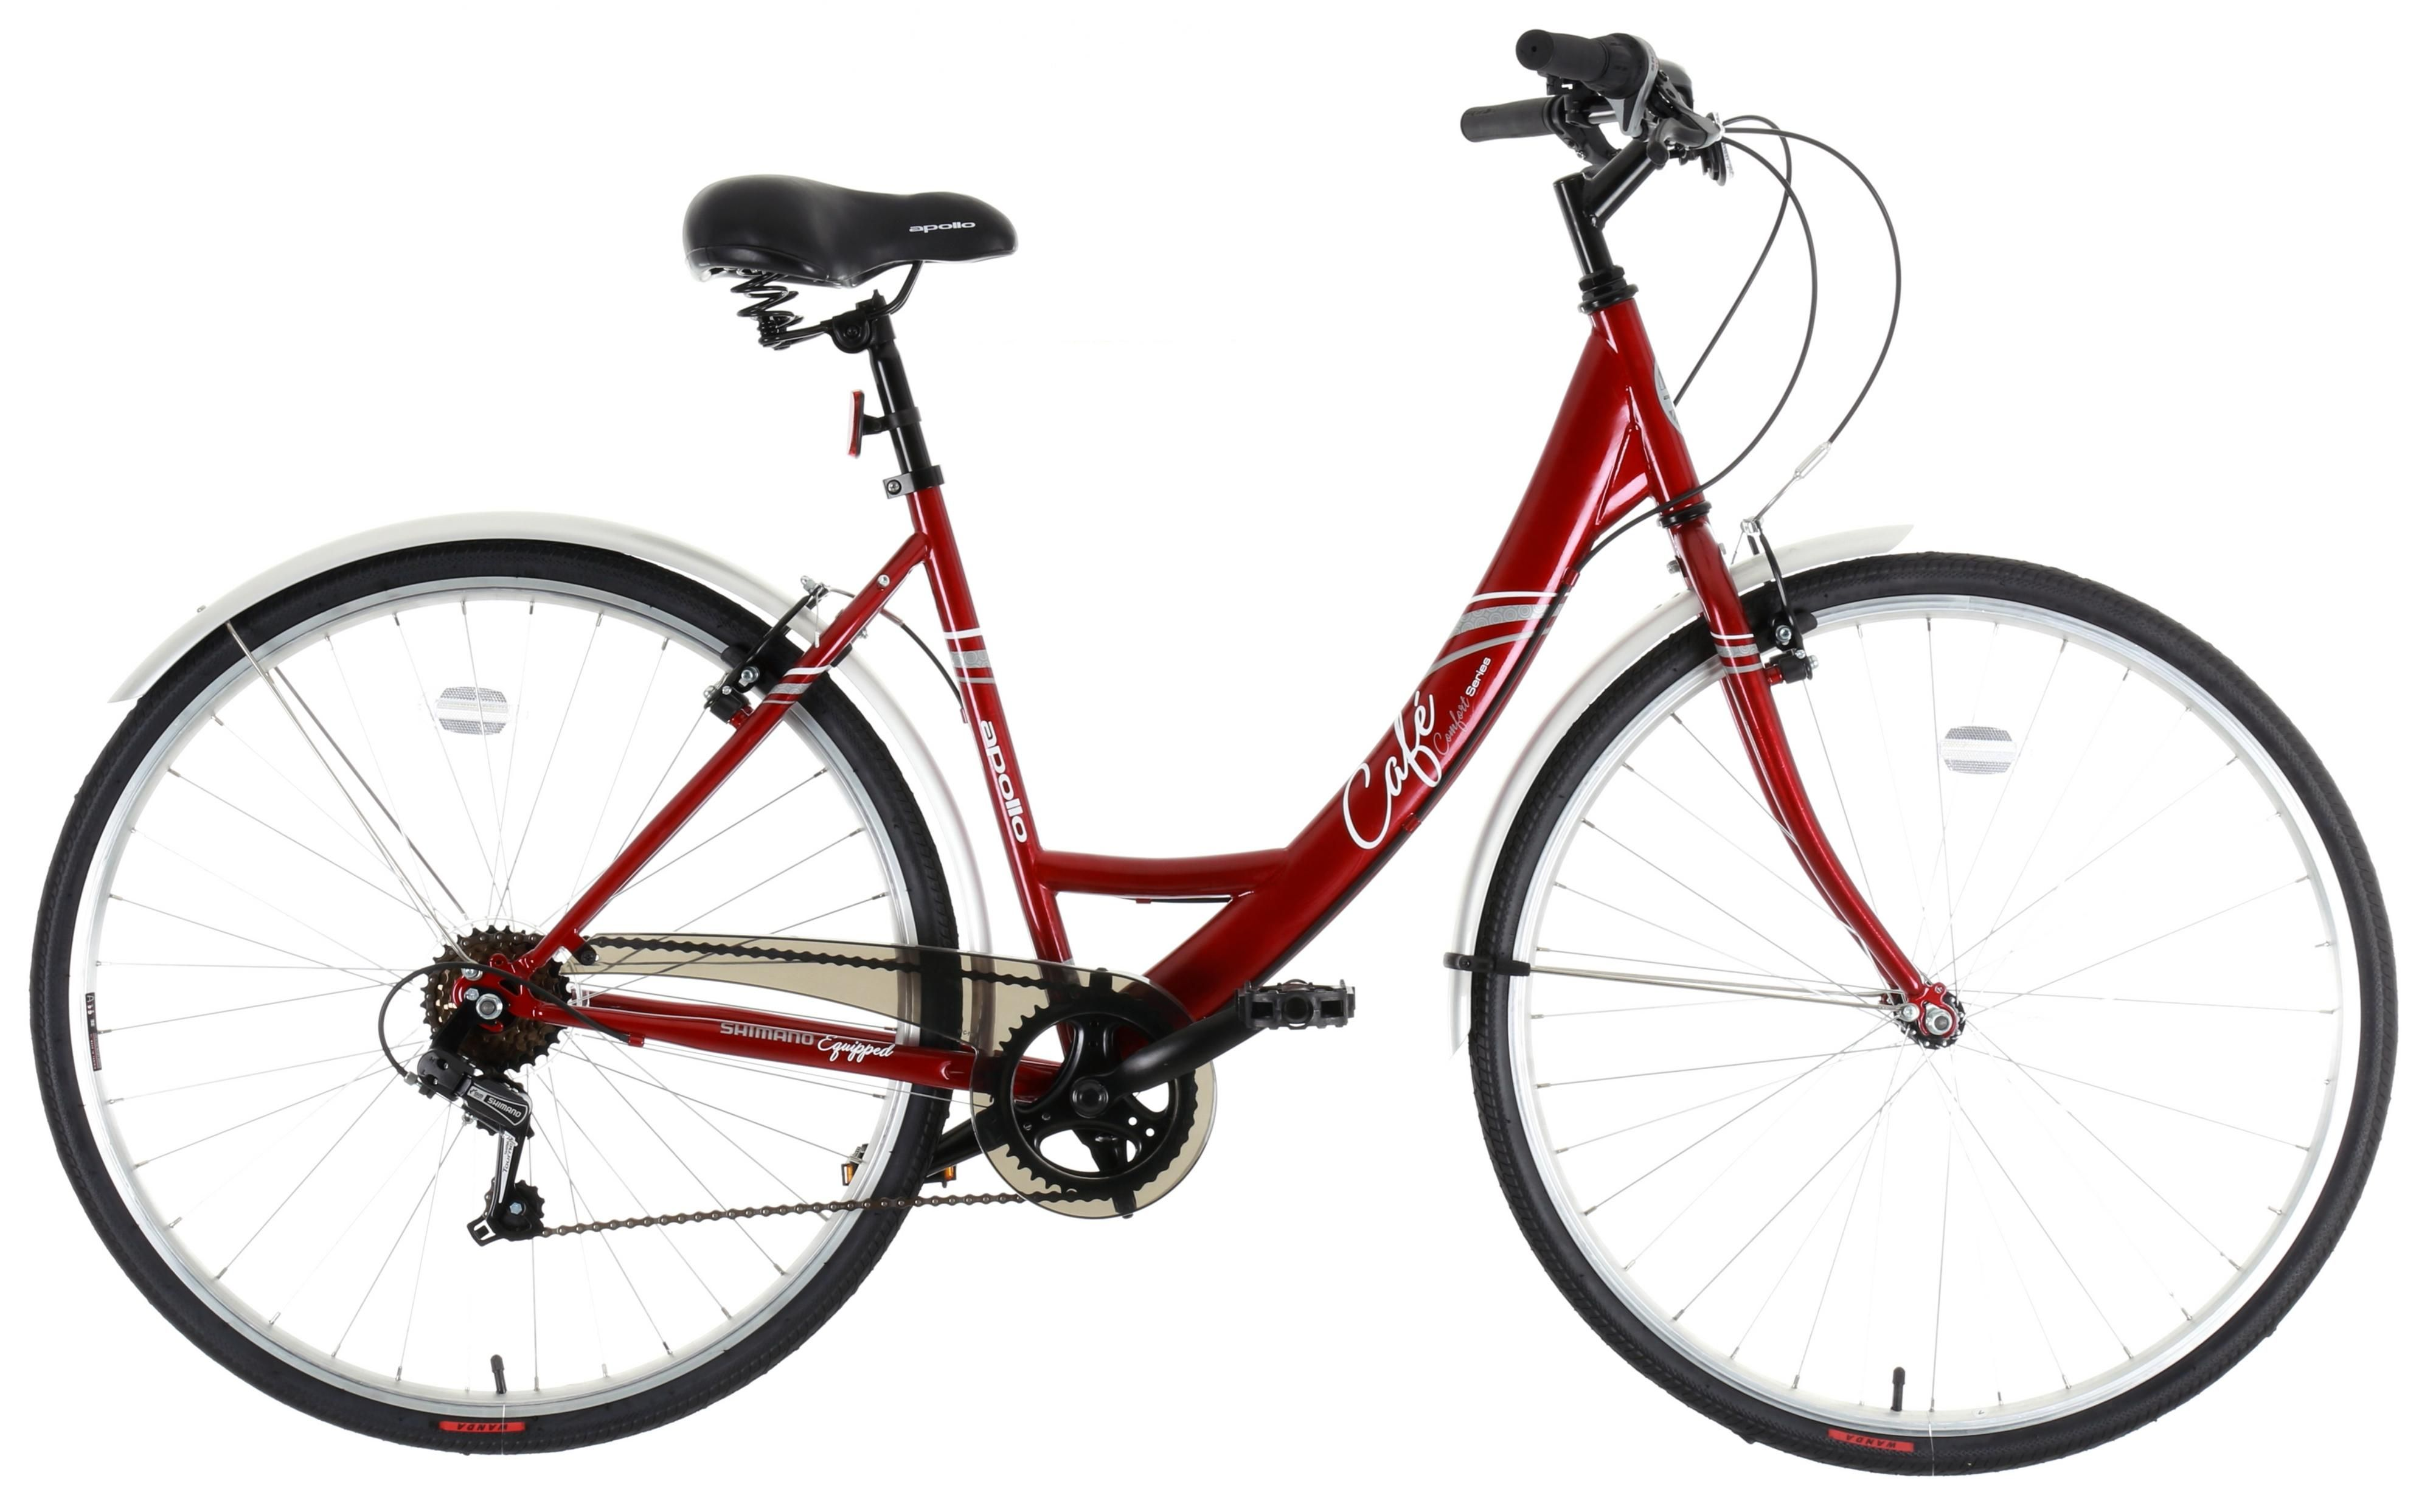 The Apollo Cafe Womens Hybrid Bike is the perfect choice for